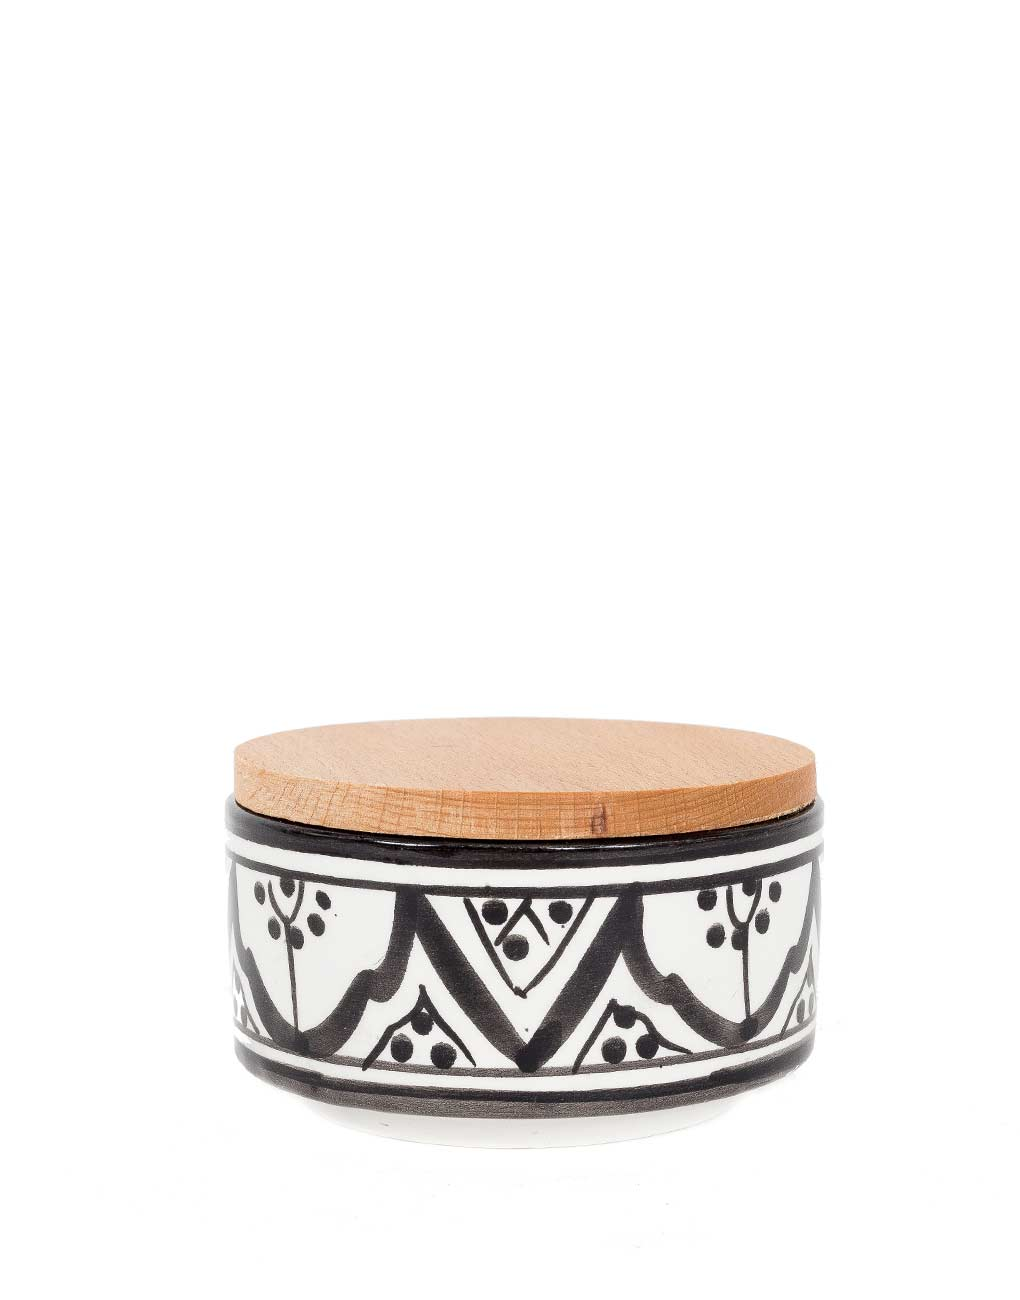 Fair Trade, Handmade Medium Moroccan Ceramic Box, Black